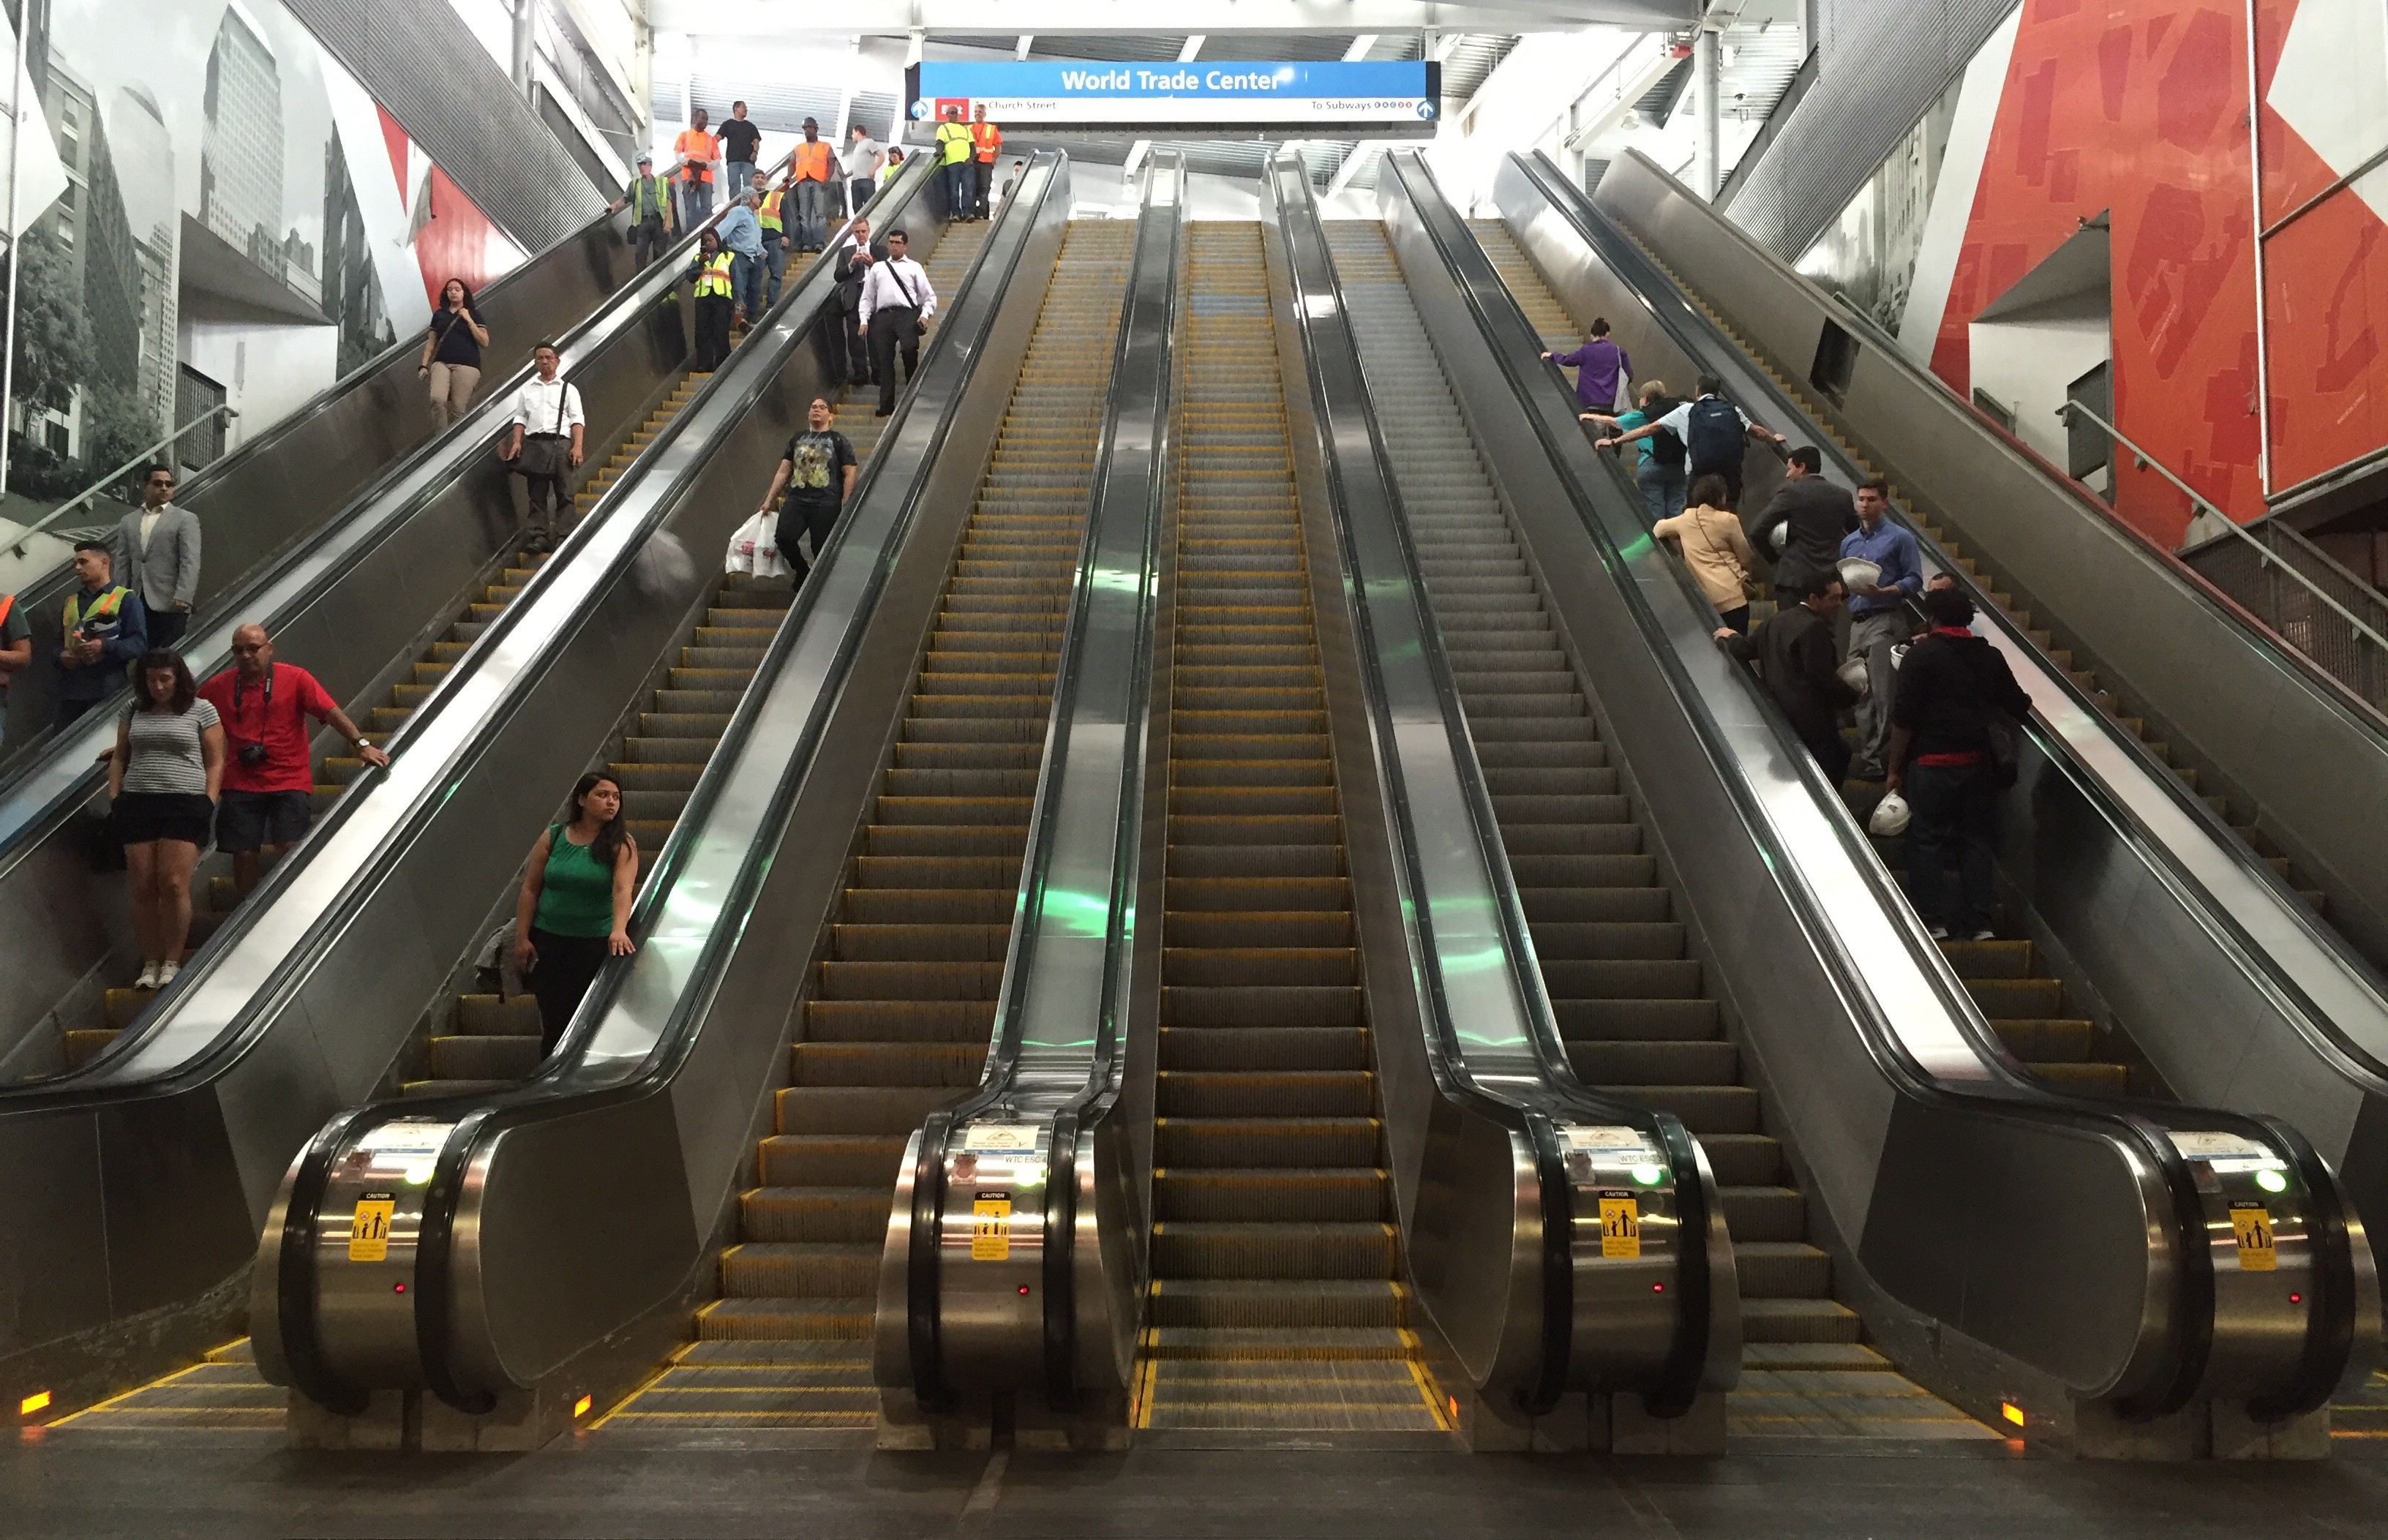 Escalator bank, Temporary WTC Station